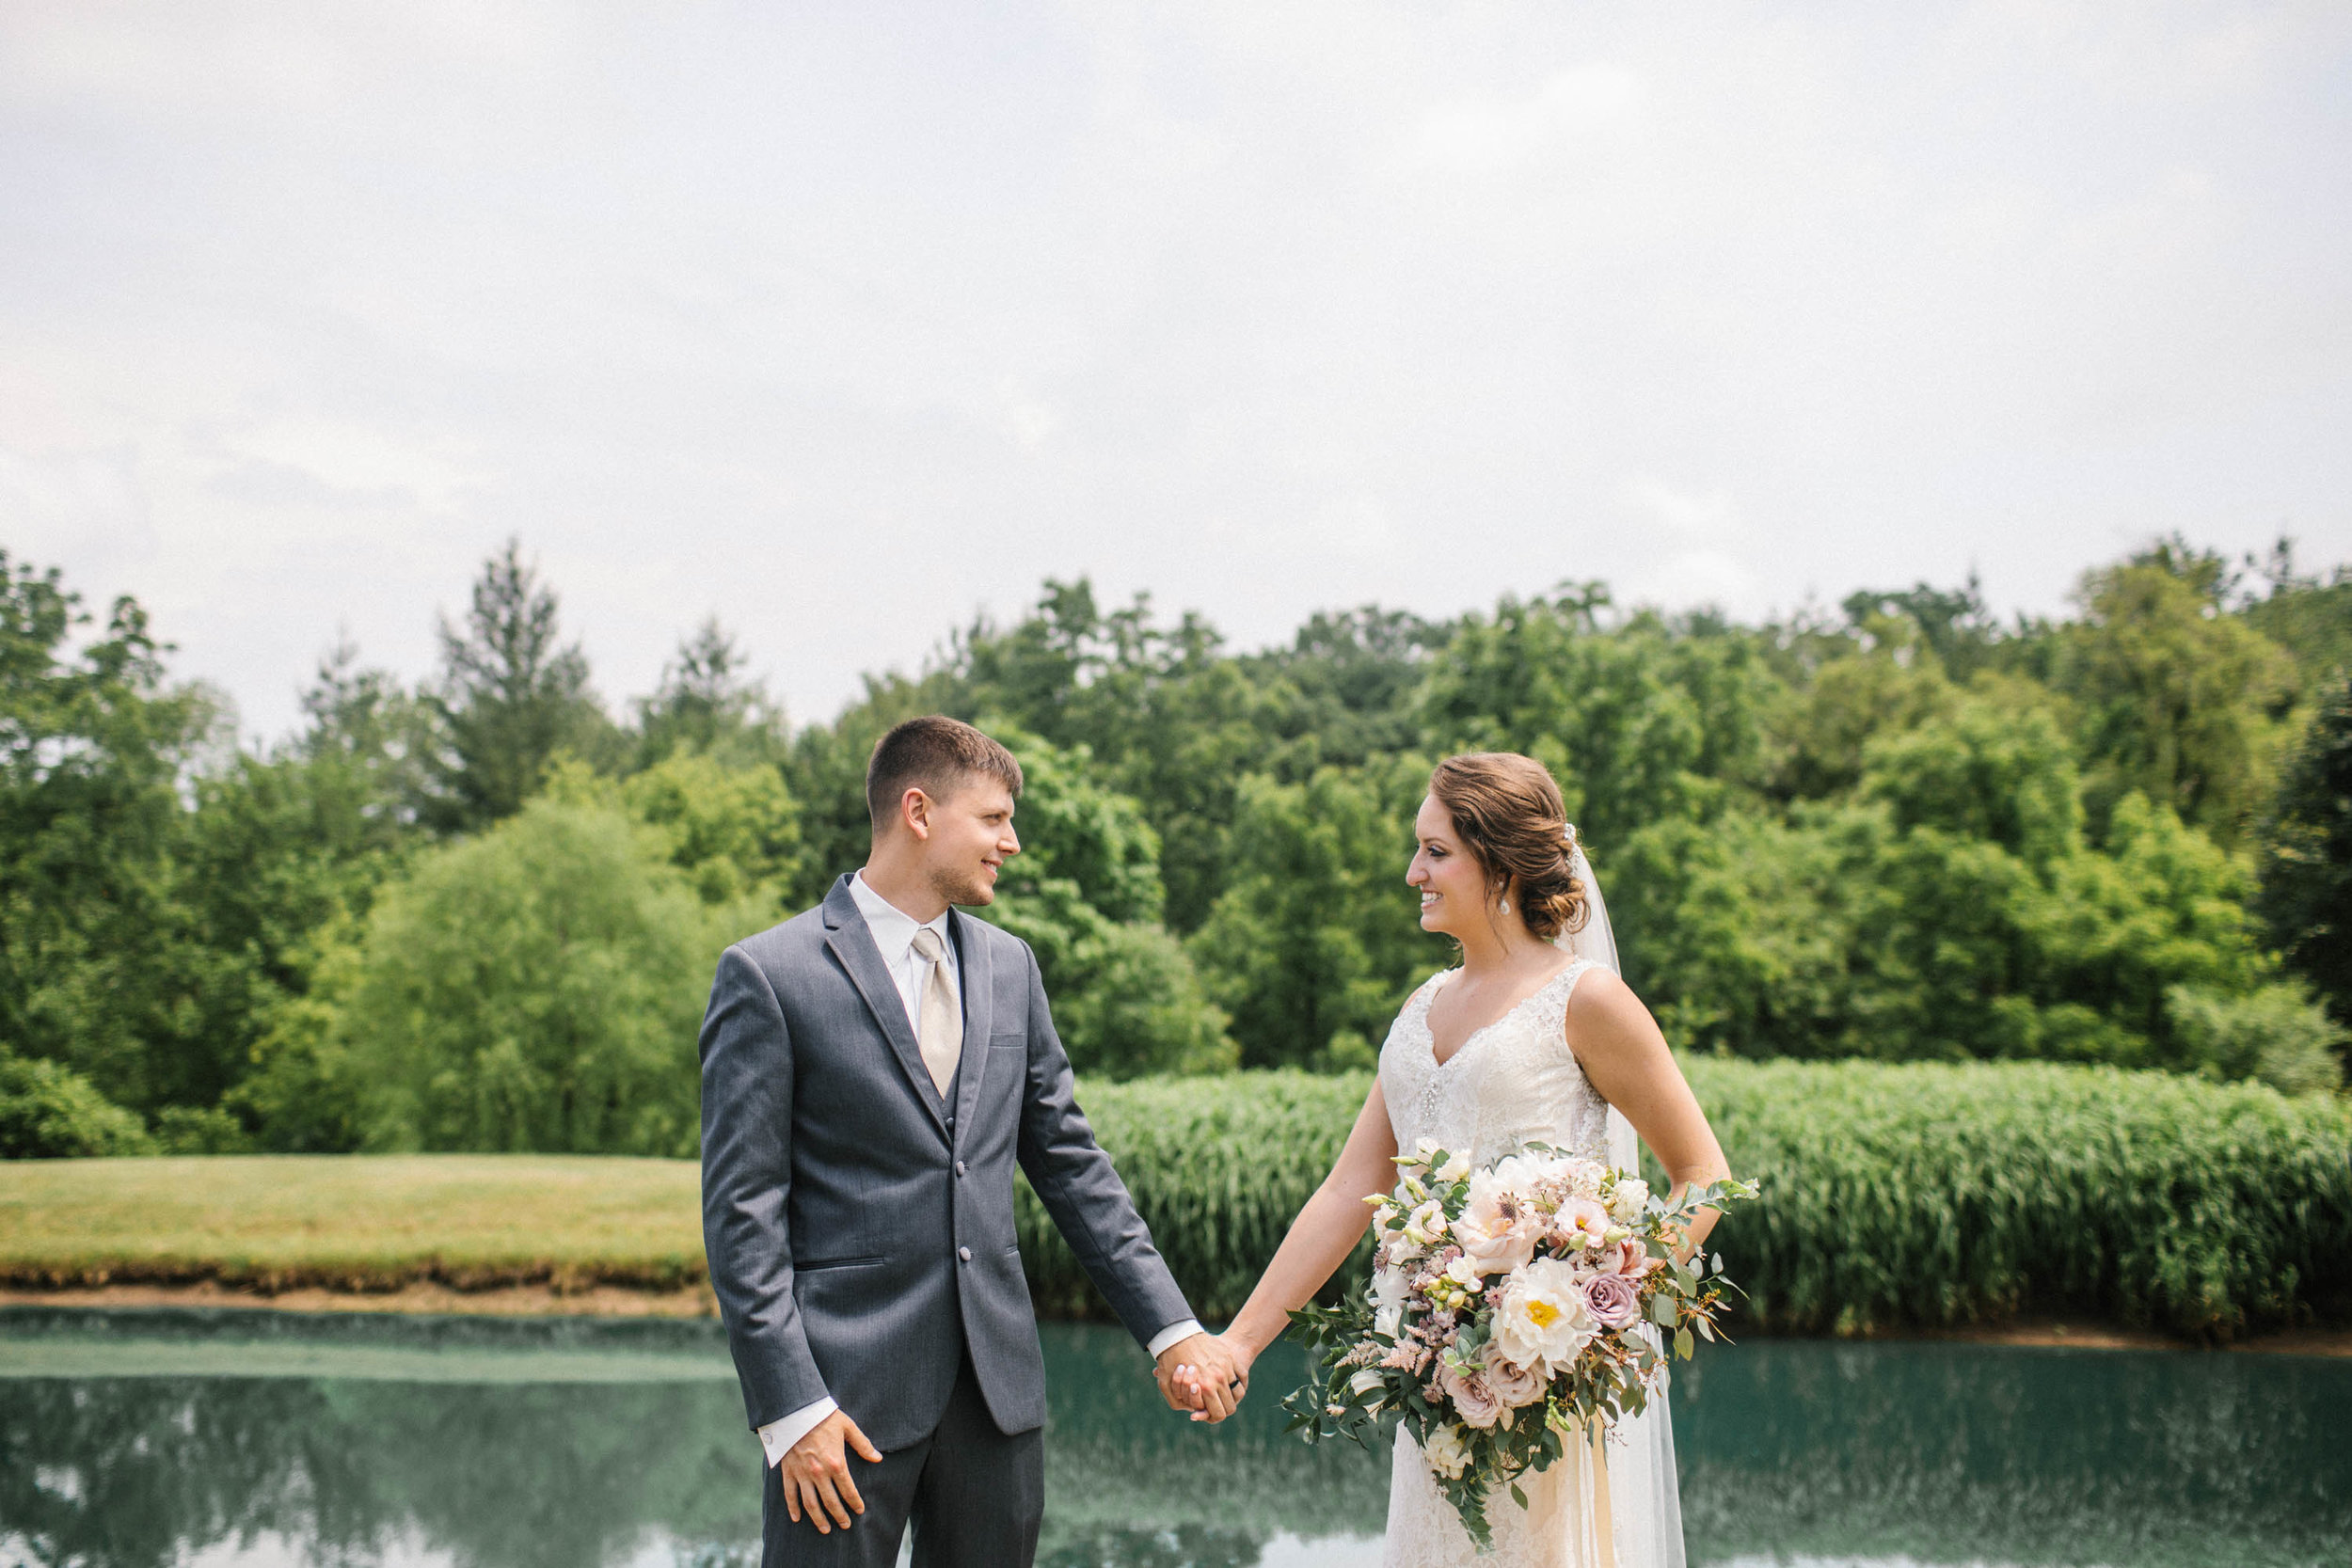 Pella wedding photographers iowa Jenna and Treye